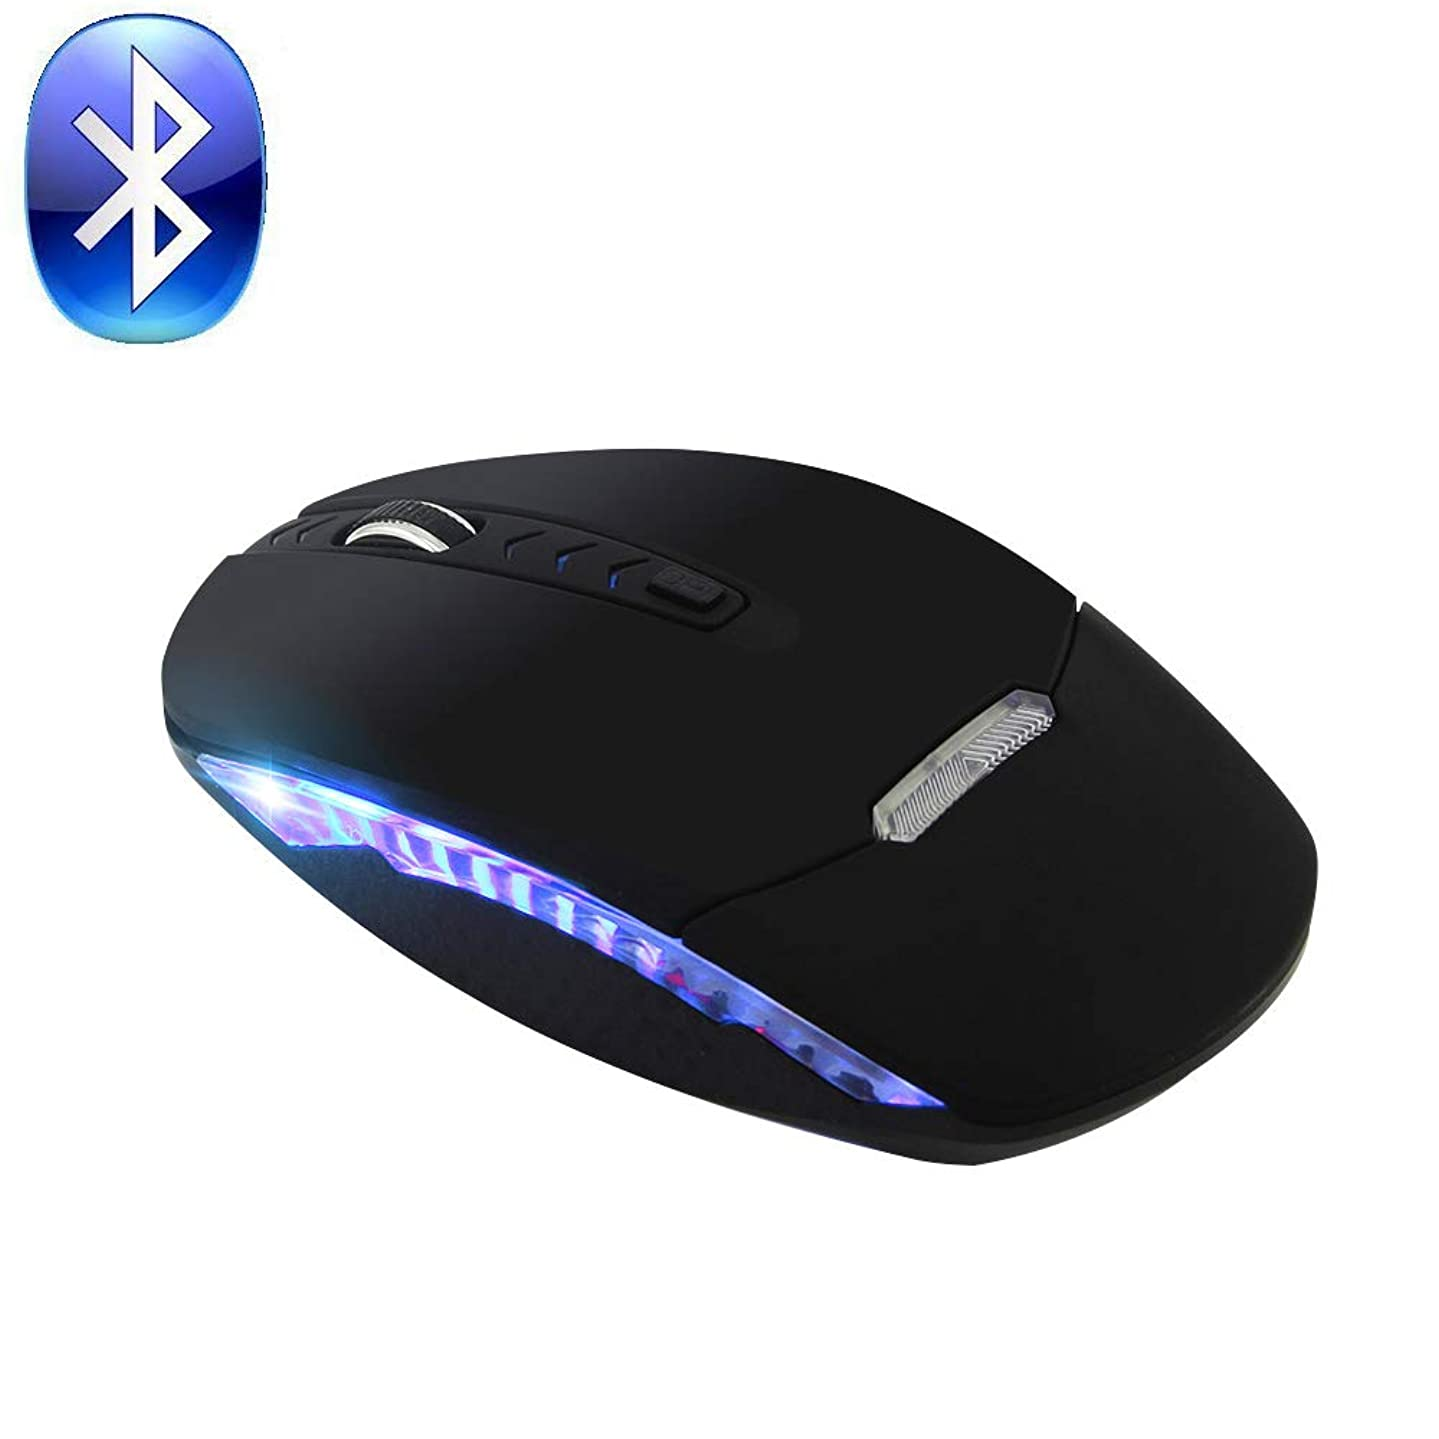 Bluetooth Wireless Mouse,Rechargeable Silent Optical Mouse with USB Receiver for Notebook, PC, Mac, Laptop, Computer,Windows/Android Tablet,800/1200/1600DPI,Blue LED Light